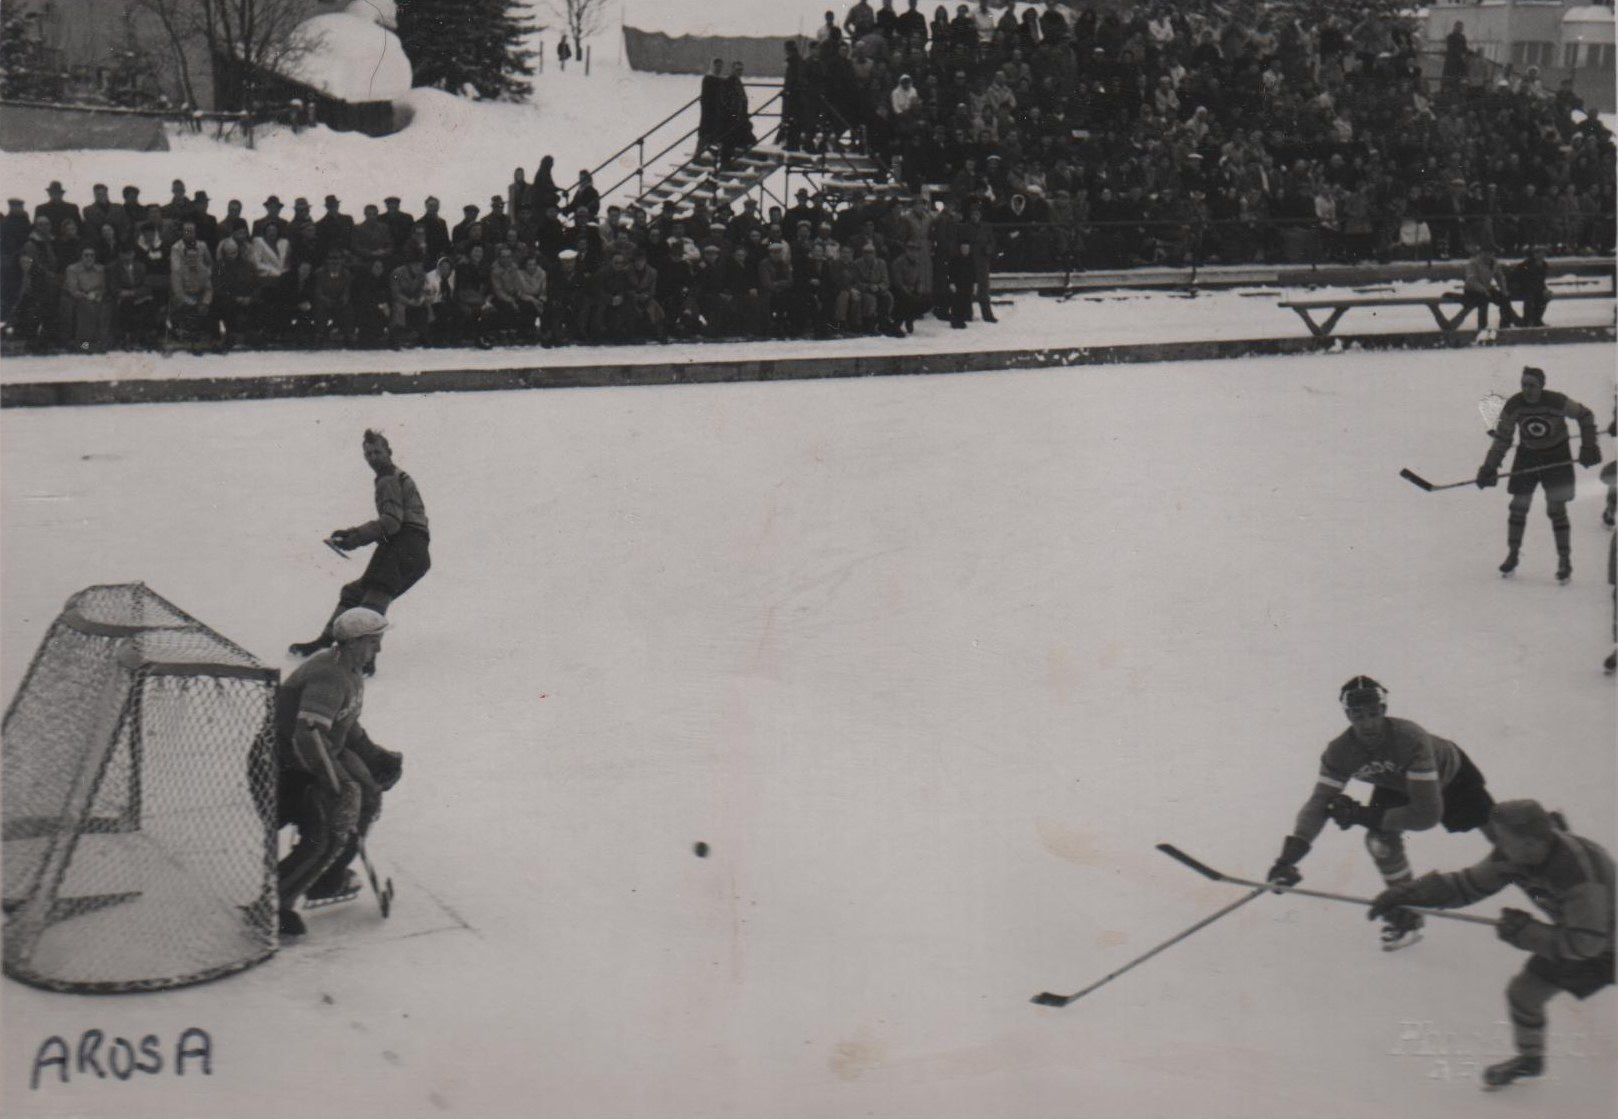 Photo 4: RCAF Flyers vs  EHC Arosa   at Arosa, Graubunden, Switzerland